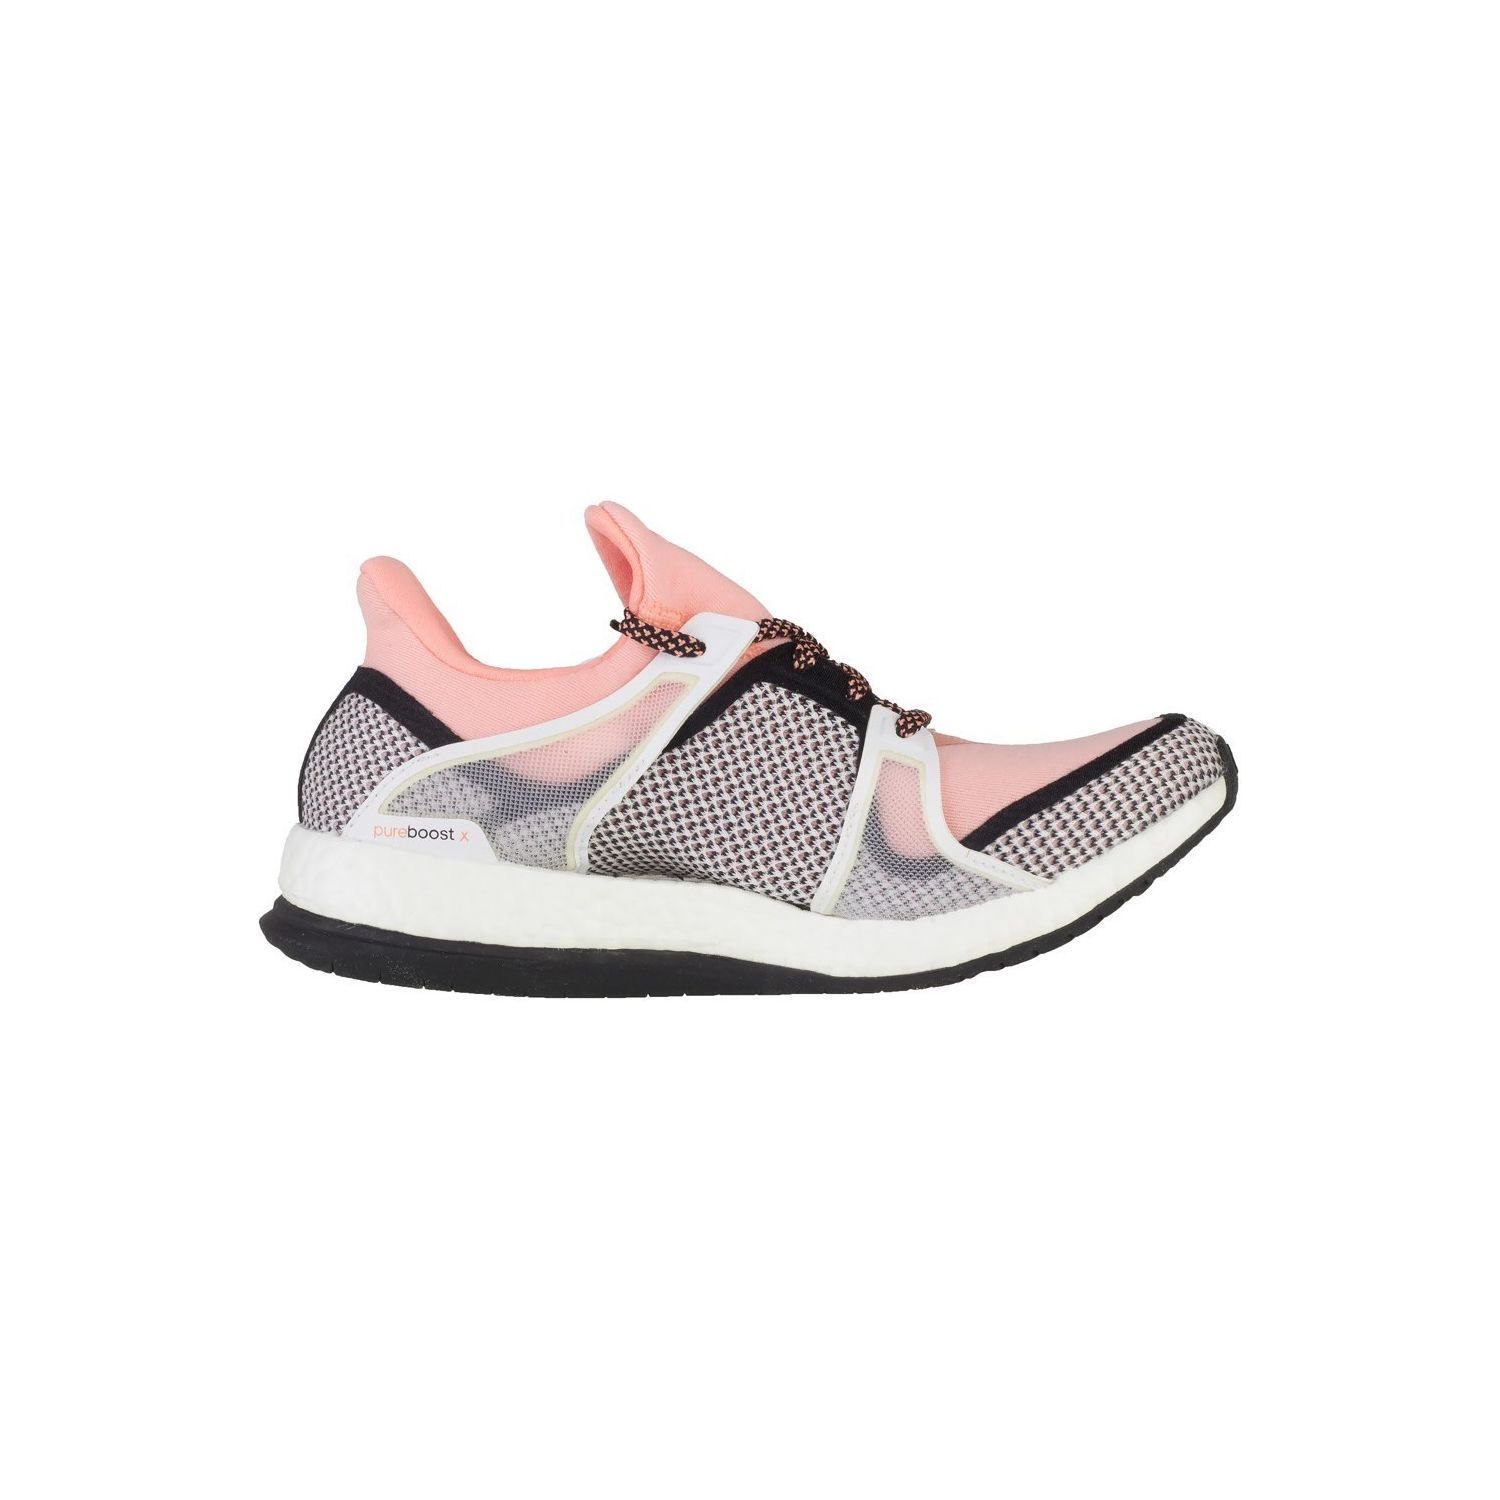 Pas X Tr Pure W Boost Cher Rose Adidas Achat 23 36 P8qxawxf